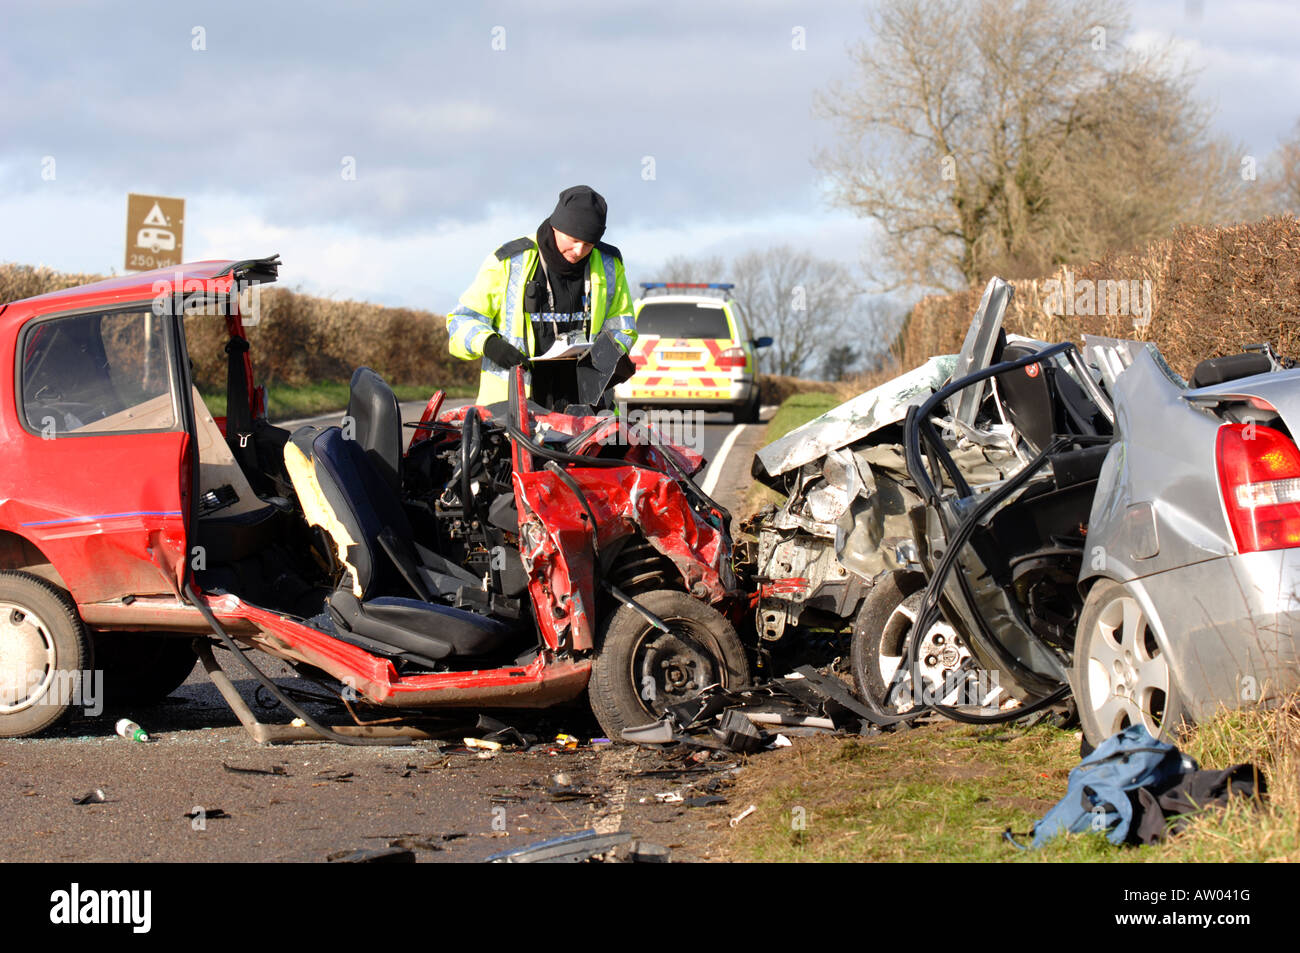 Police at the scene of a fatal head on car crash that killed 4 people - Stock Image